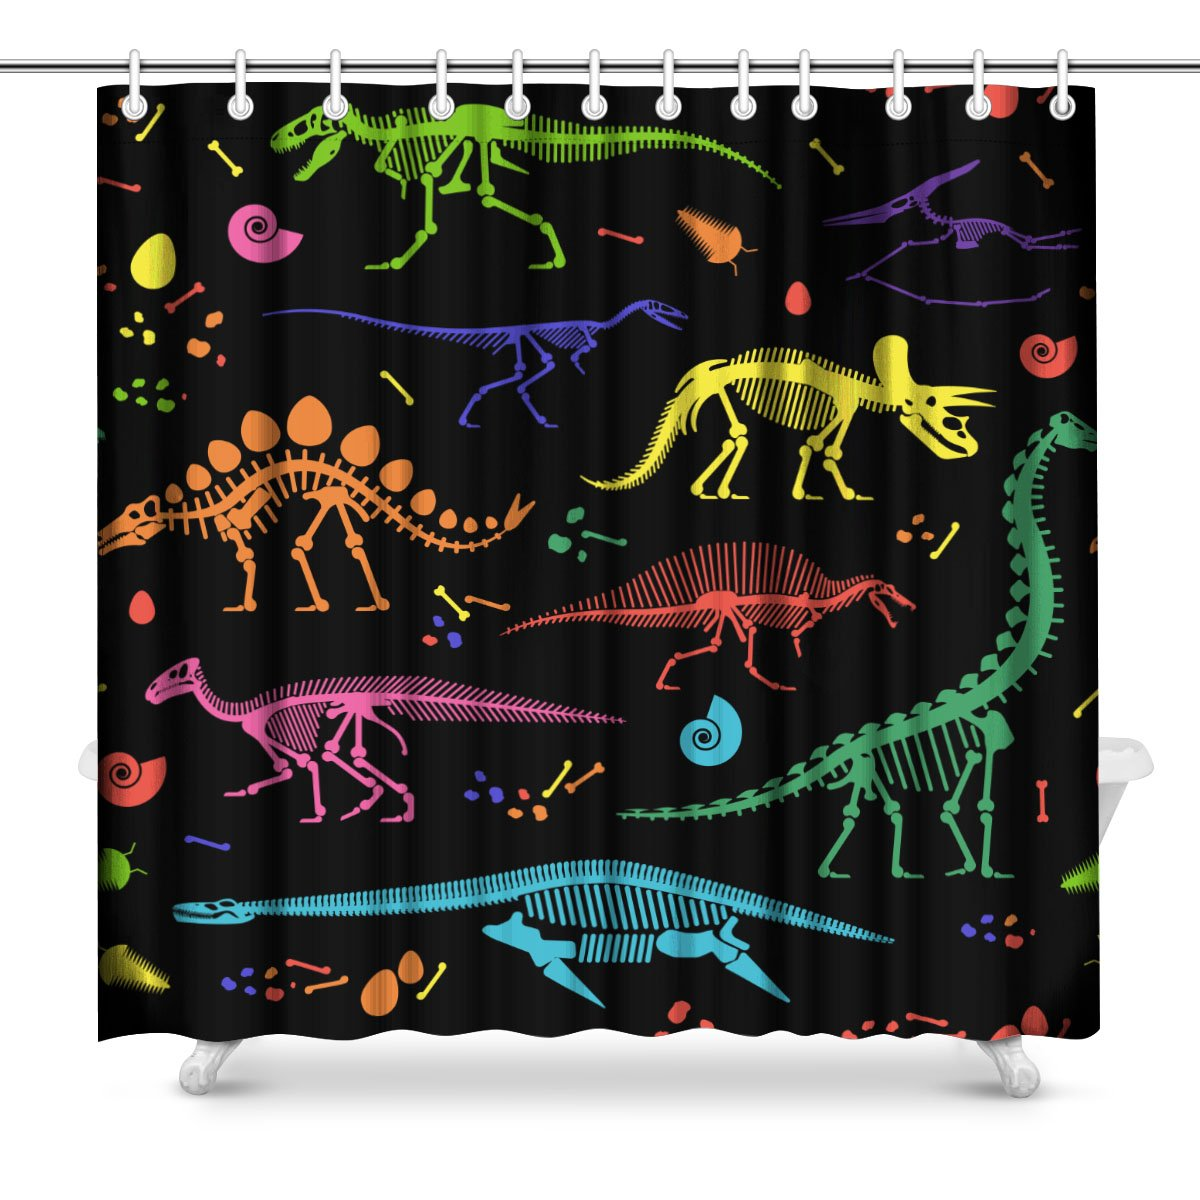 InterestPrint Skeletons of Dinosaurs and Fossils Art Decor Print Bathroom Shower Curtain Decorations Fabric Extra Long 72 Inches